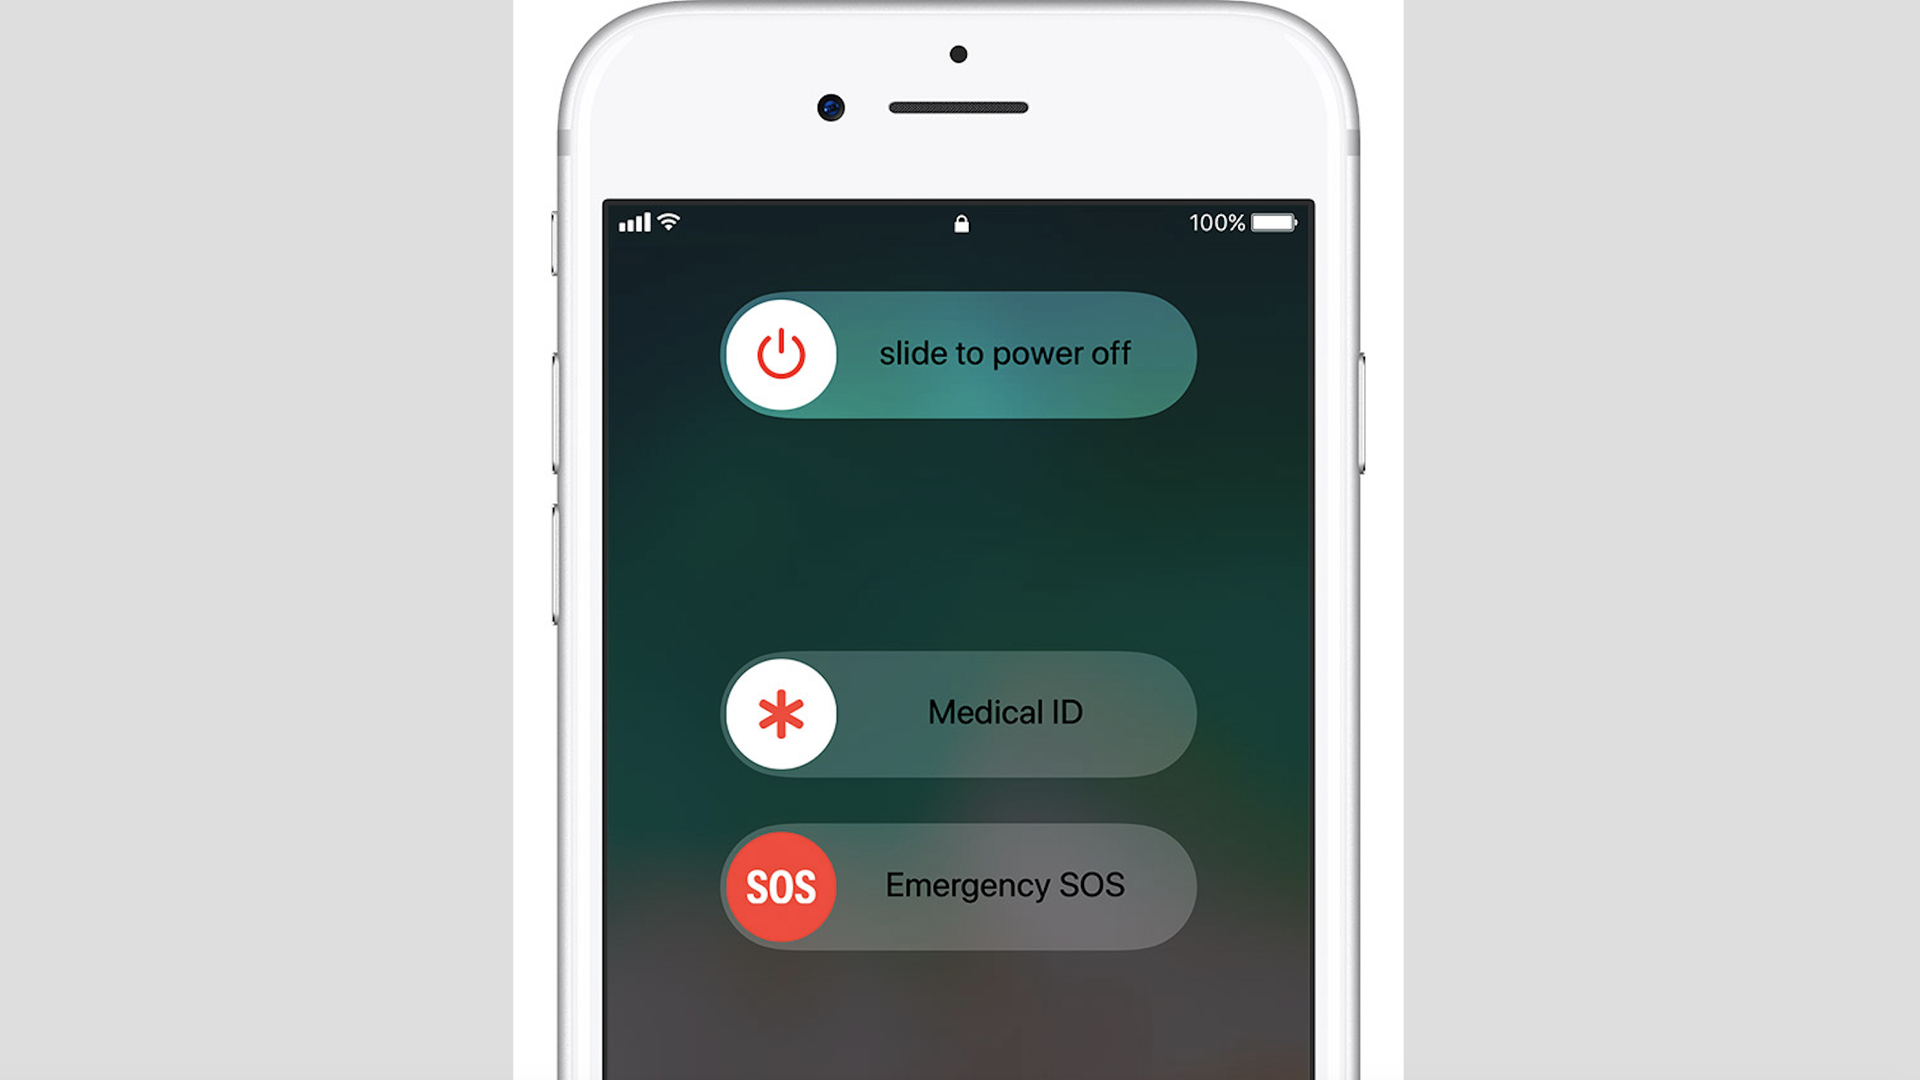 The emergency calling feature on an iPhone